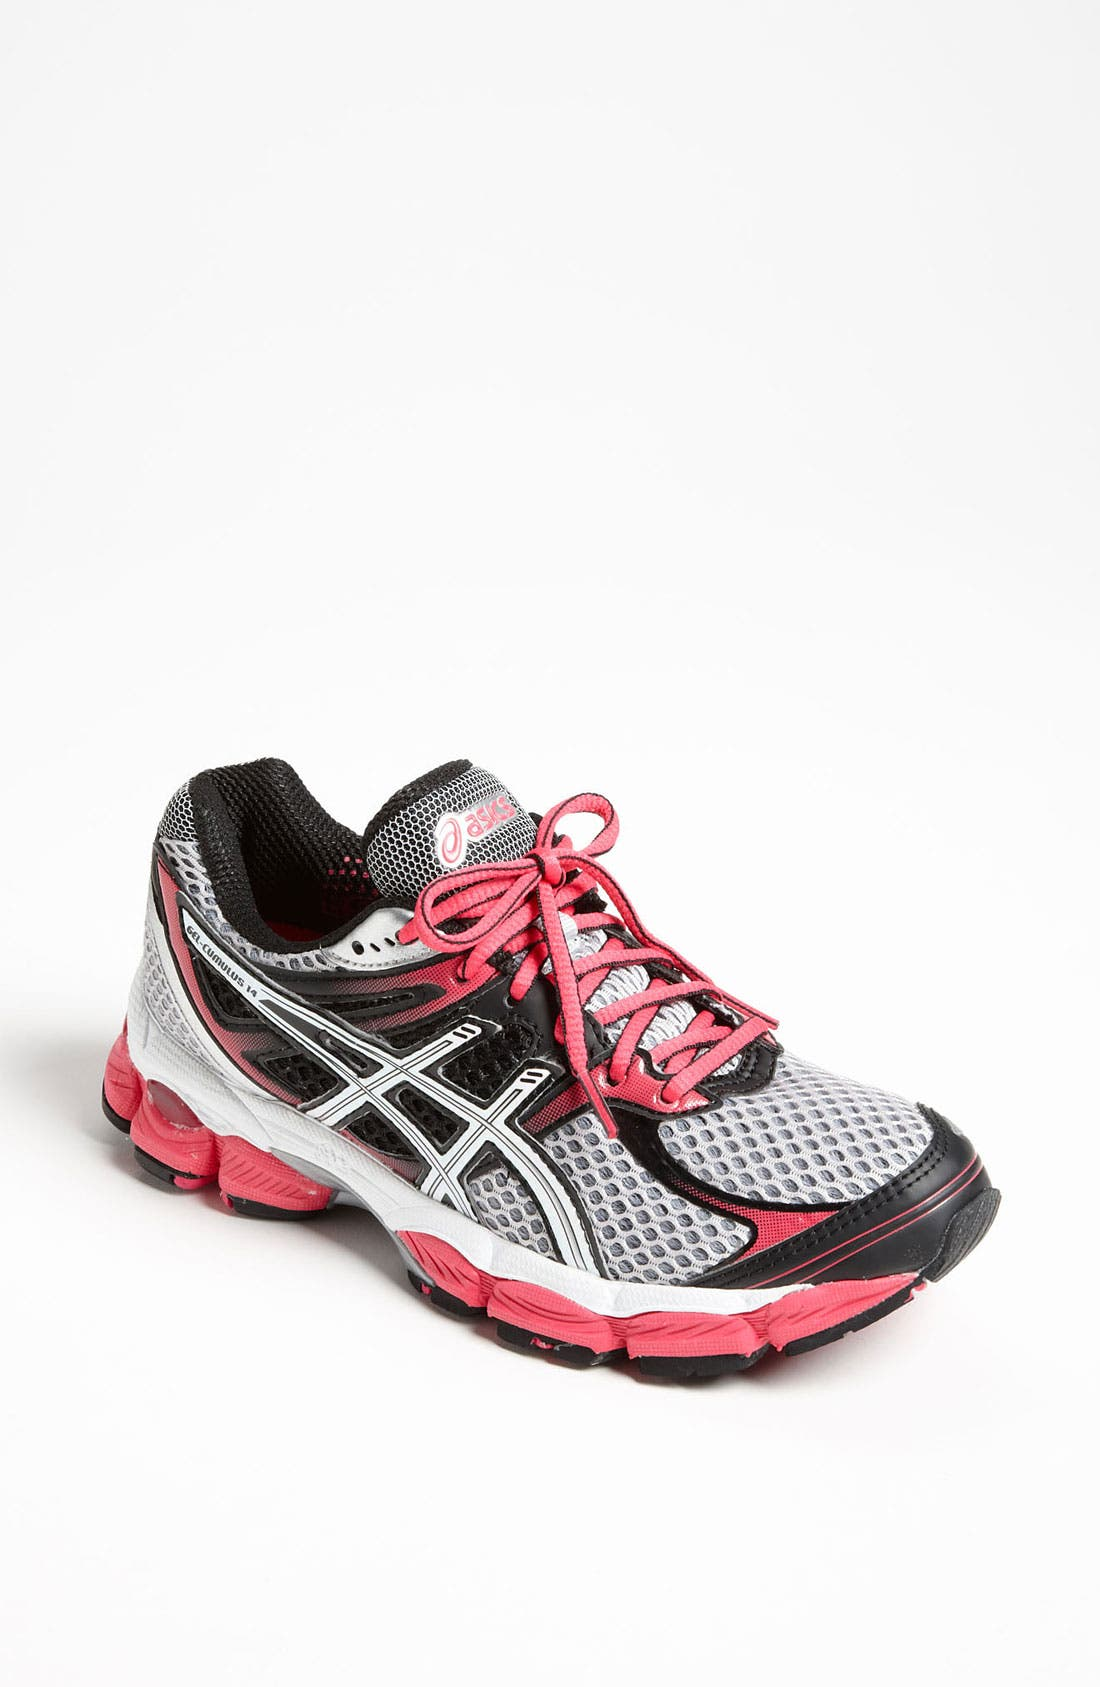 Alternate Image 1 Selected - ASICS® 'GEL-Cumulus 14' Running Shoe (Women)(Retail Price: $109.95)